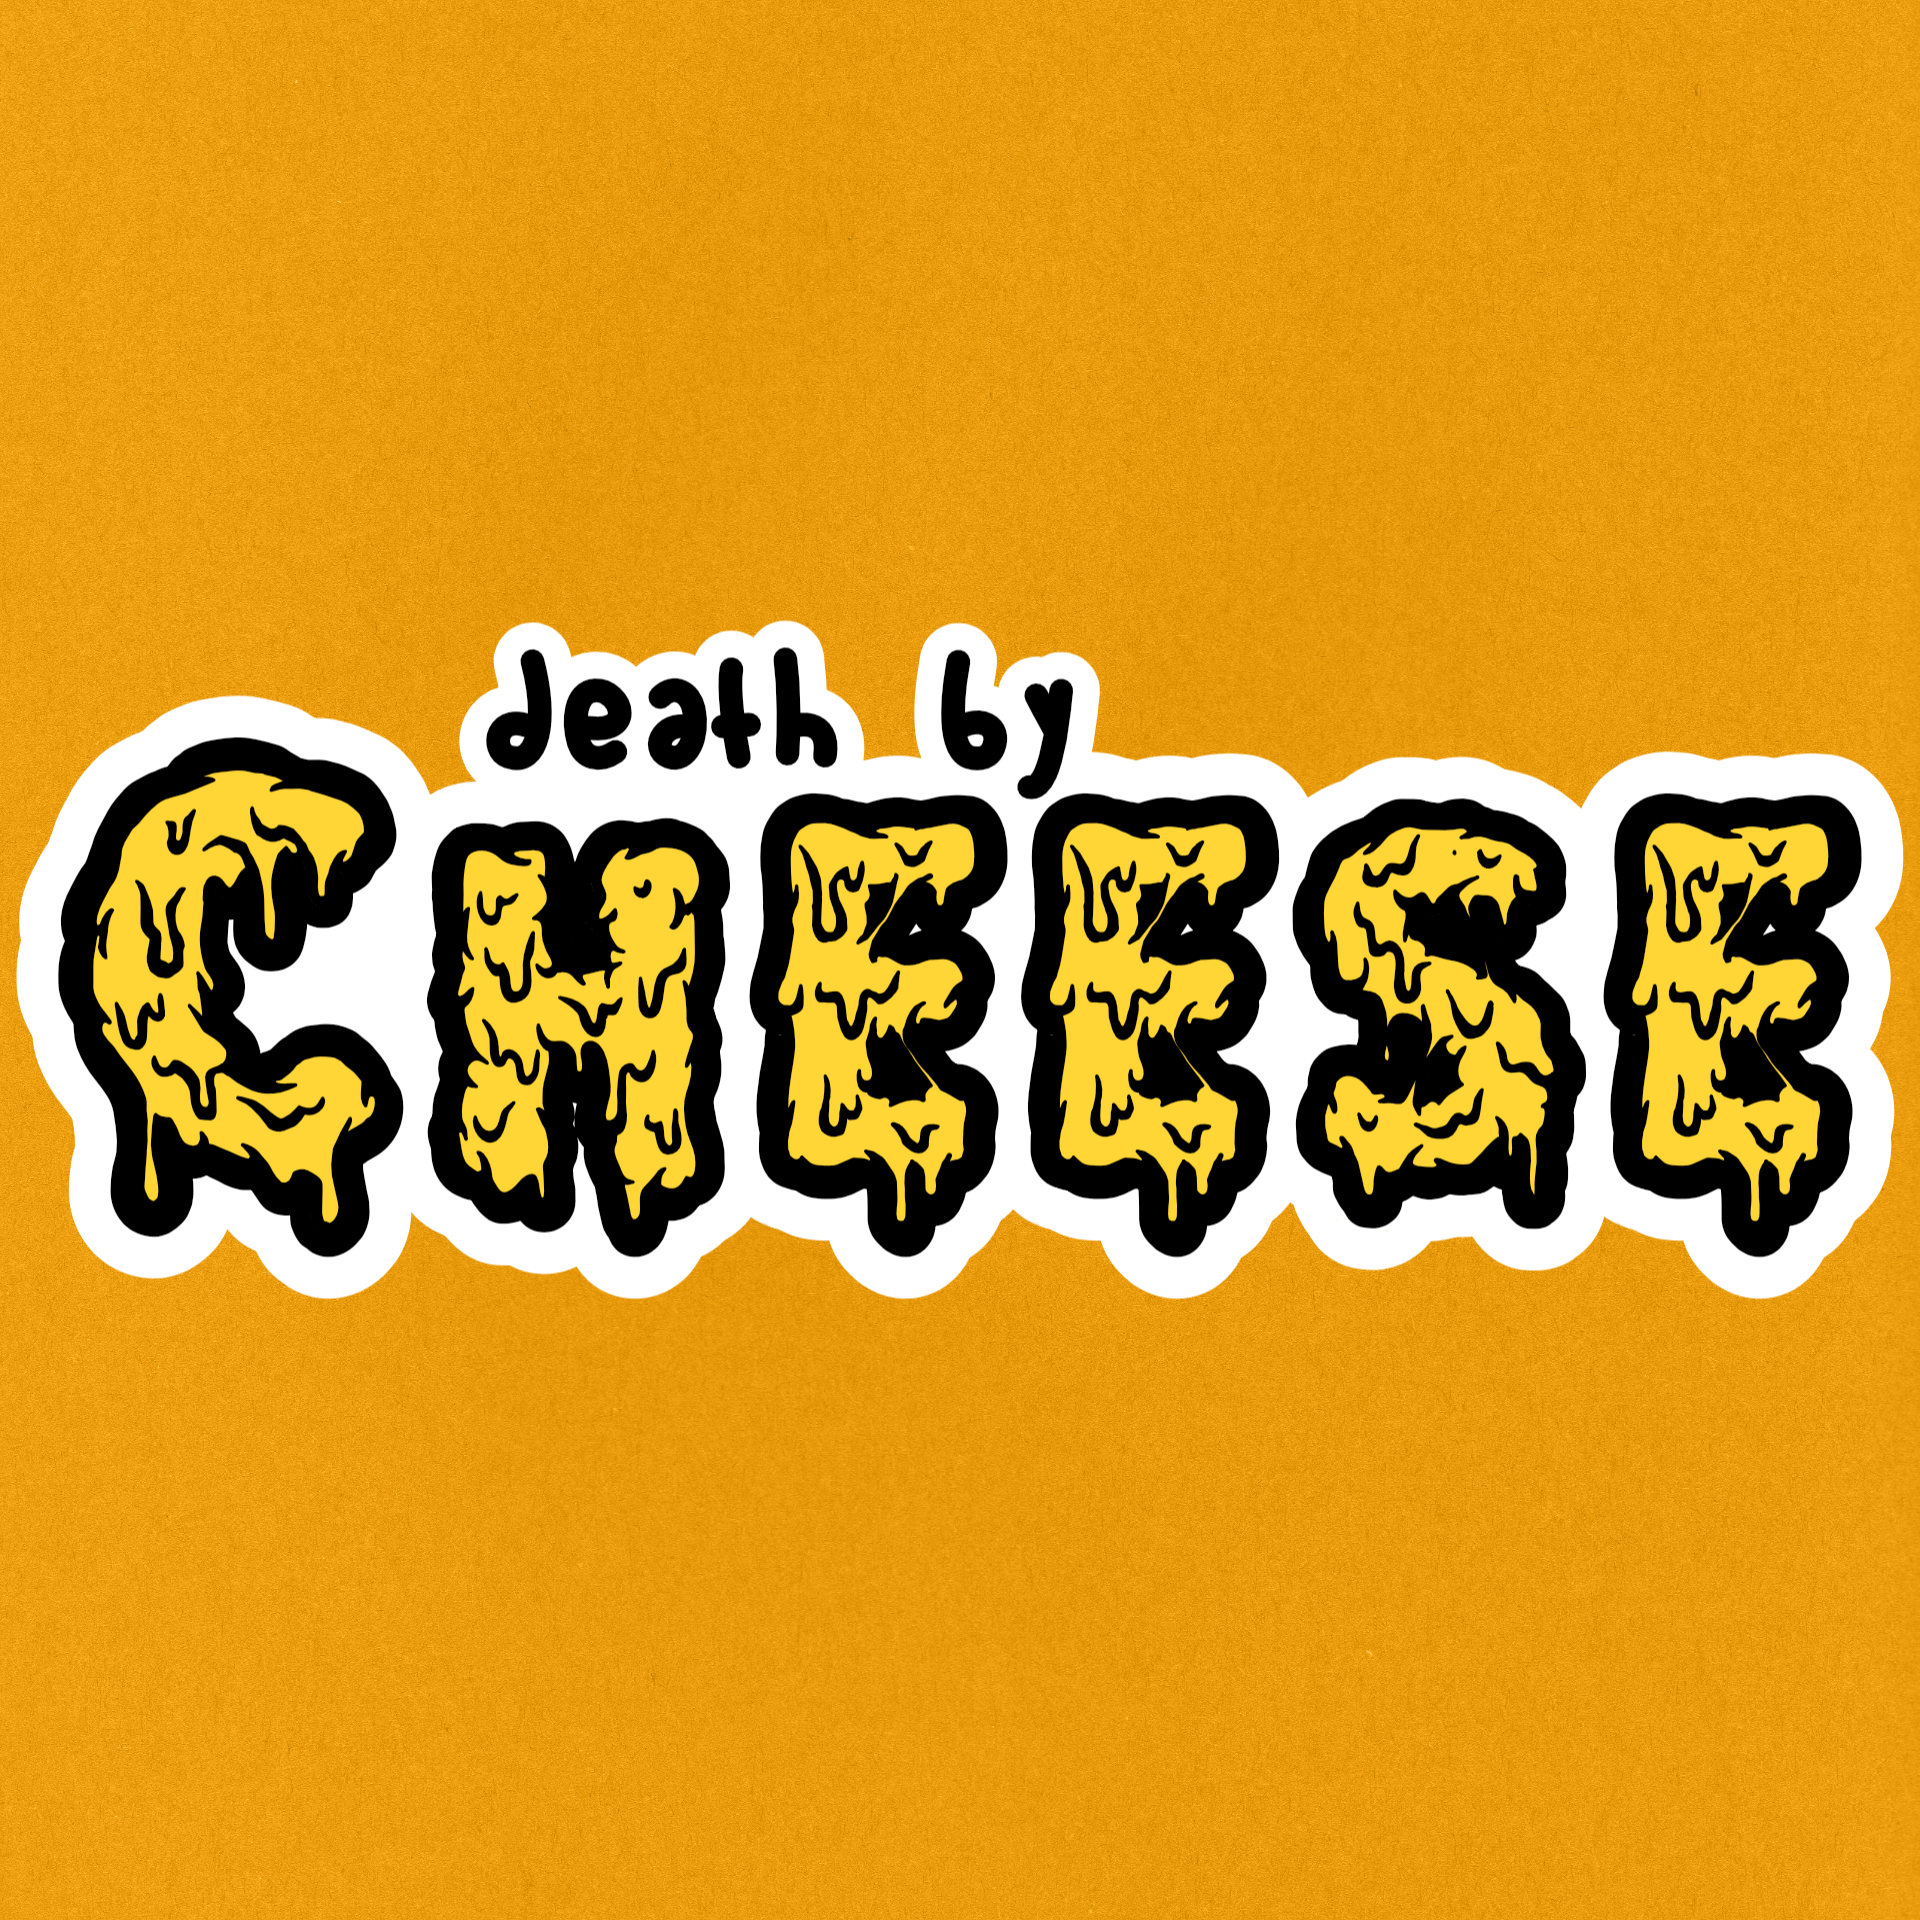 """Vinyl sticker that says """"death by cheese"""" with the word """"cheese"""" written in a melting, cheesy font"""